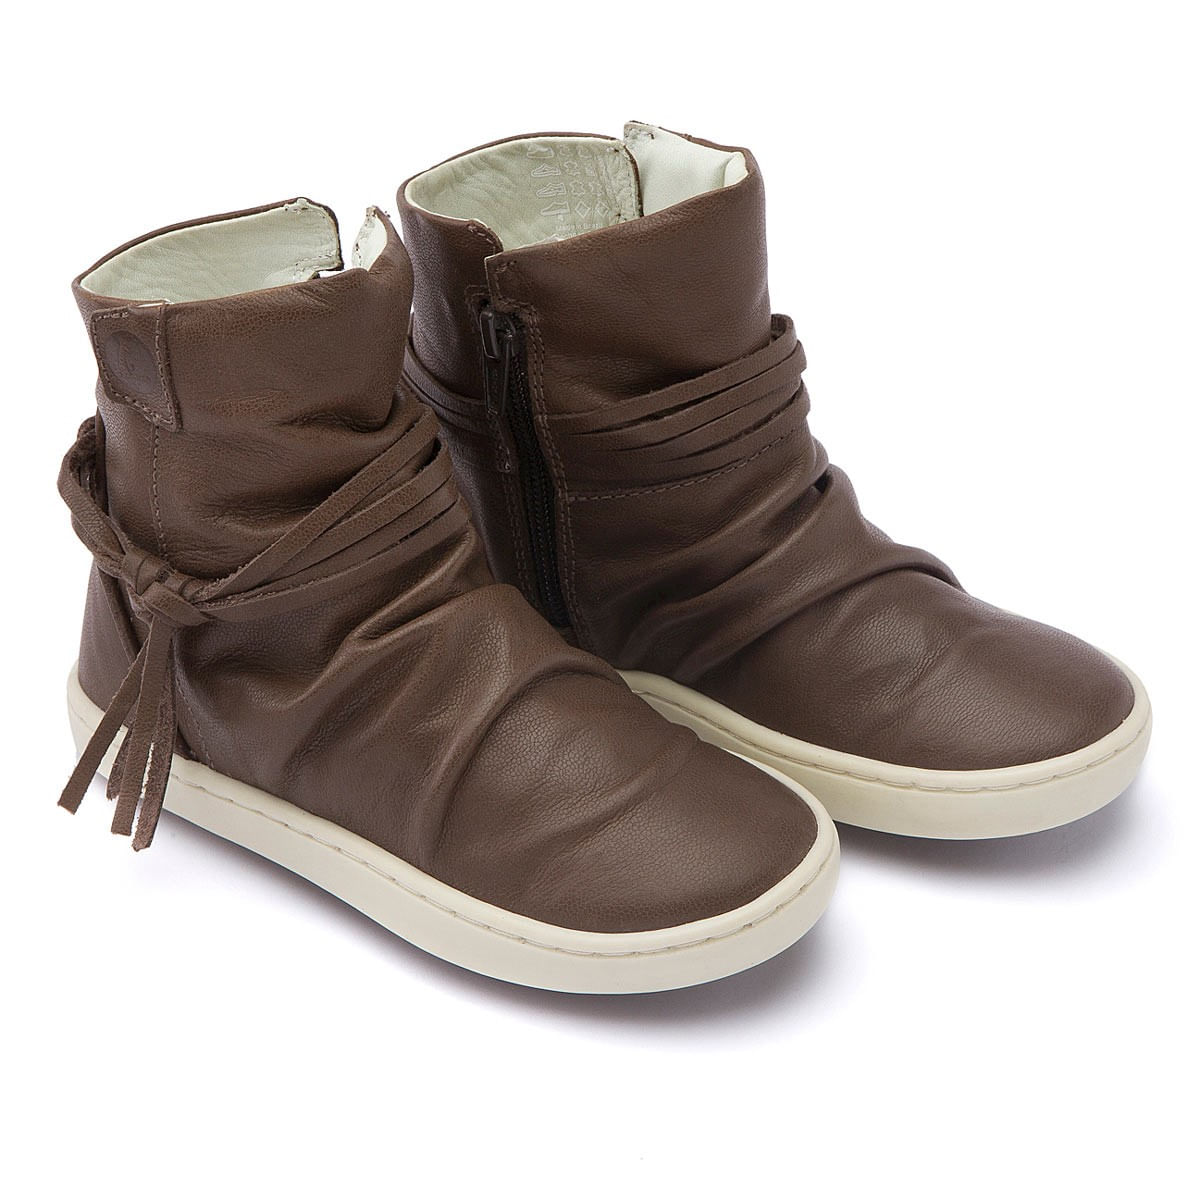 Bota-Infantil-Tip-Toey-Joey-Little-Ridge-Essentials--22-ao-26-